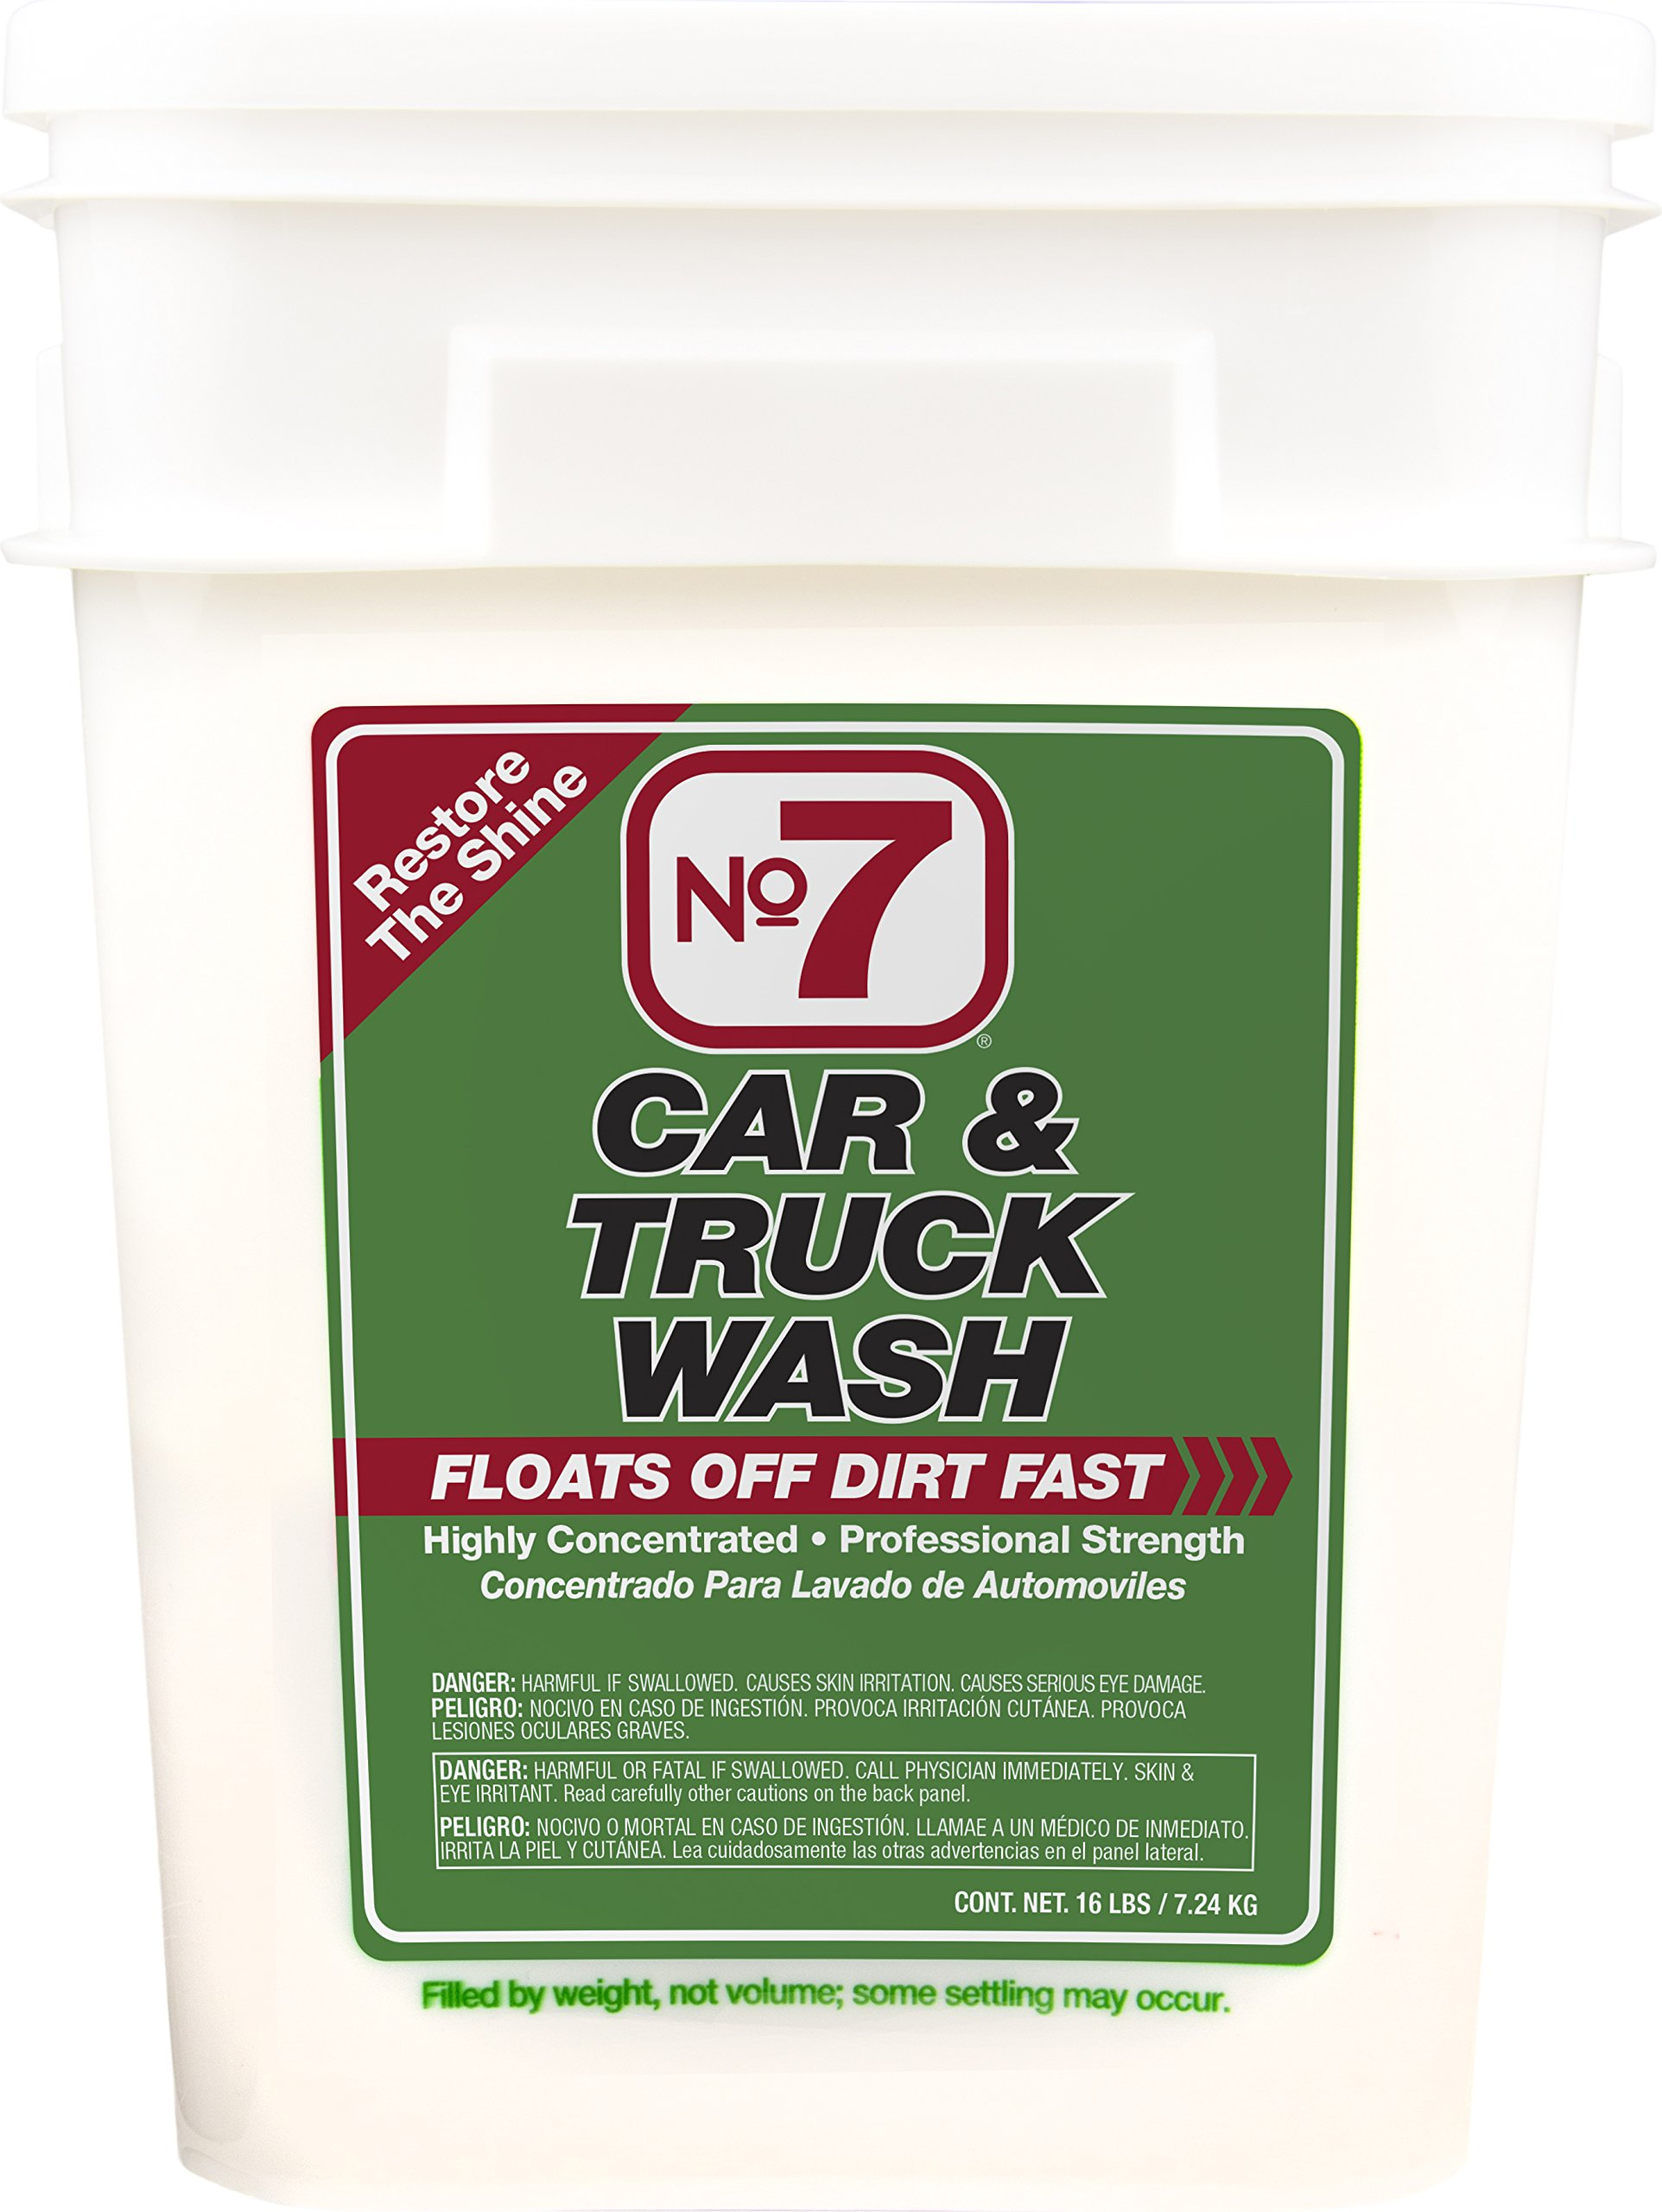 No7 Car & Truck Wash: Concentrated Powder, 16 lb Bucket